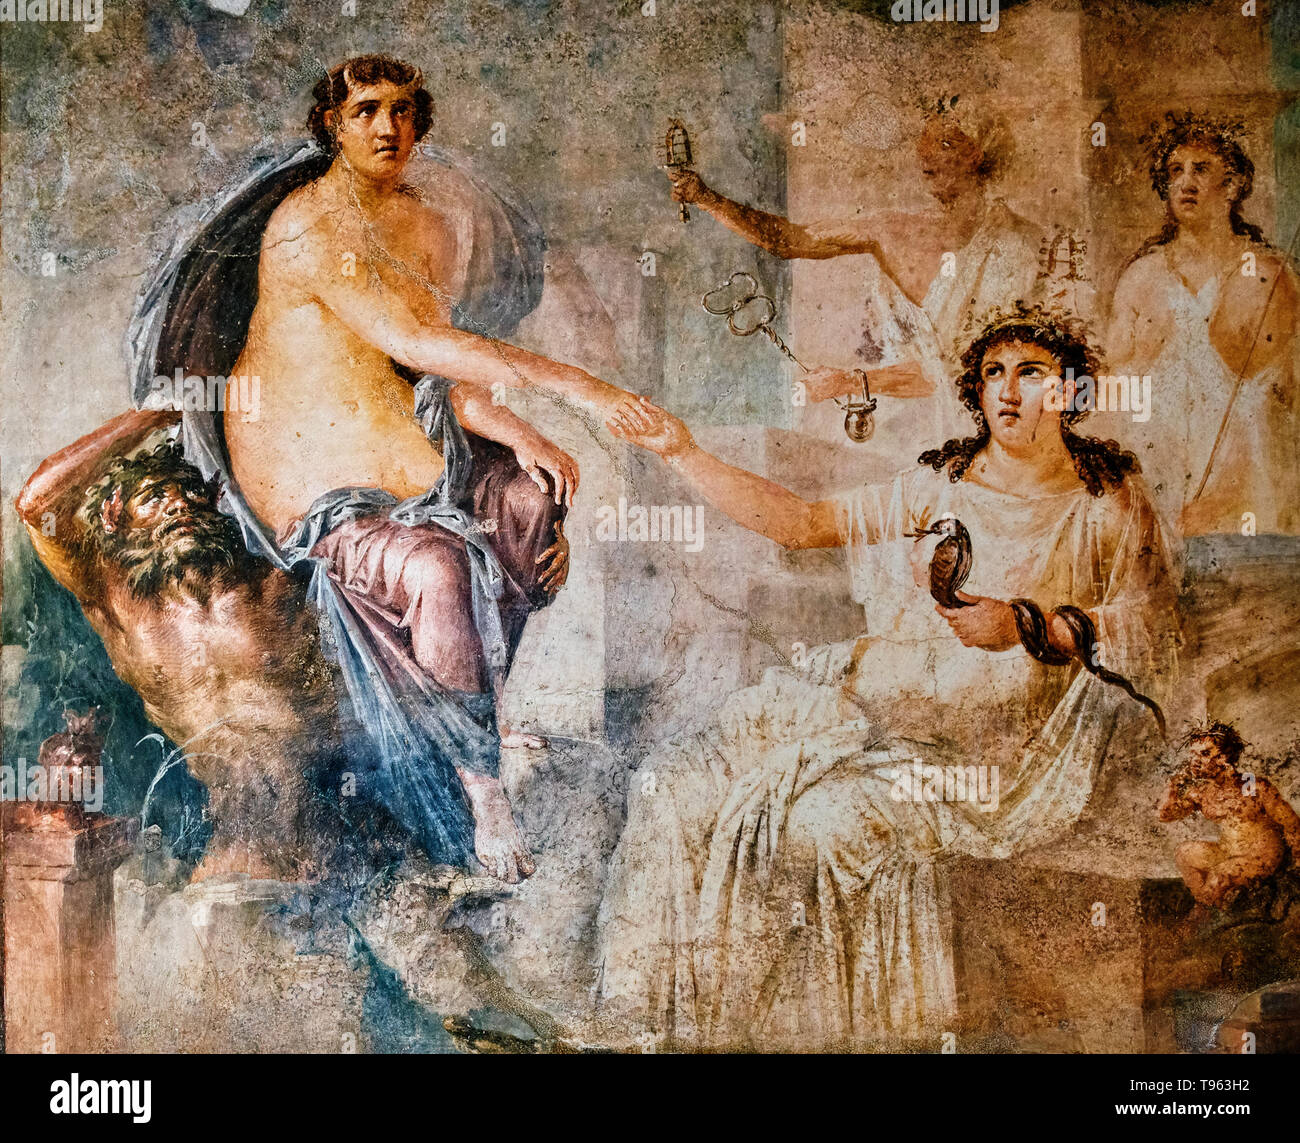 fresco of the nymph Io saved by Hermes in Pompeii - Stock Image